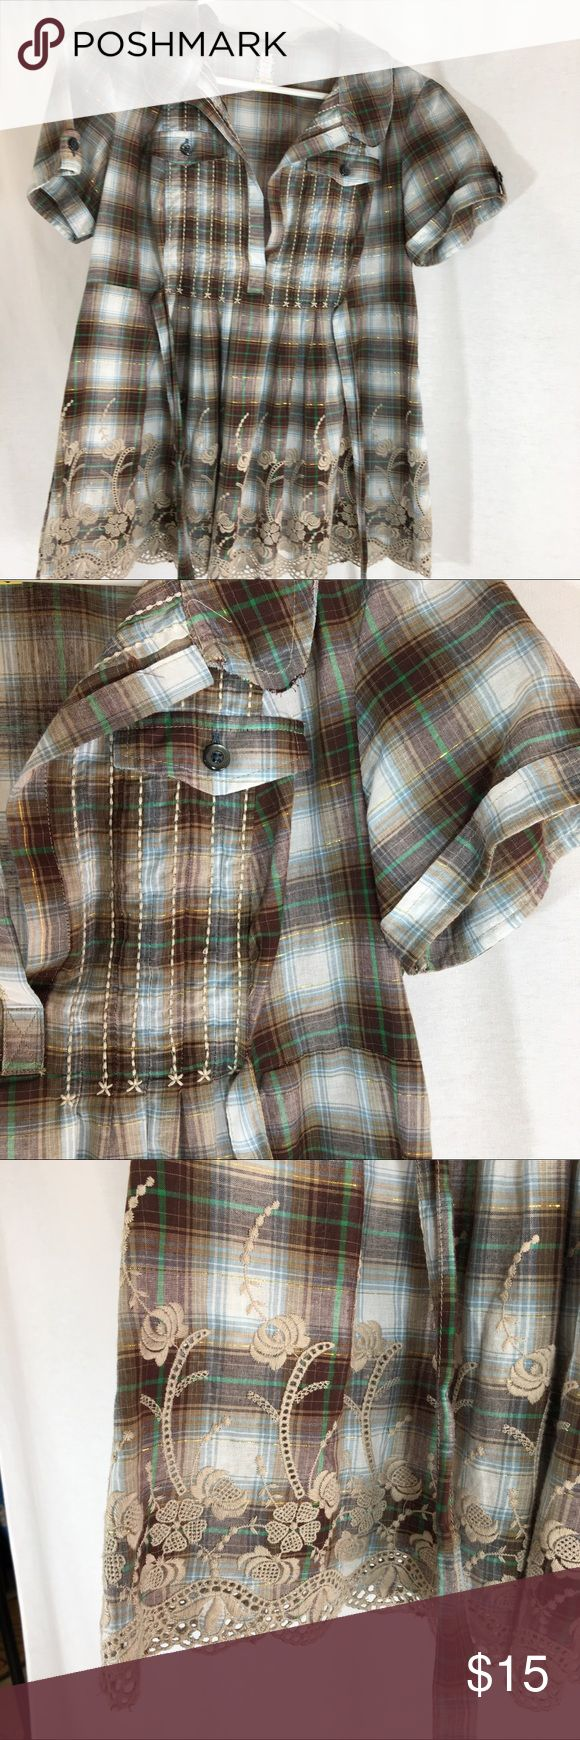 Free People plaid blouse Free People plaid blouse. Colors are neutral shades of  brown, cream & has a gold strand running thru it. Size 6 but runs small.  Excellent condition Free People Tops Blouses